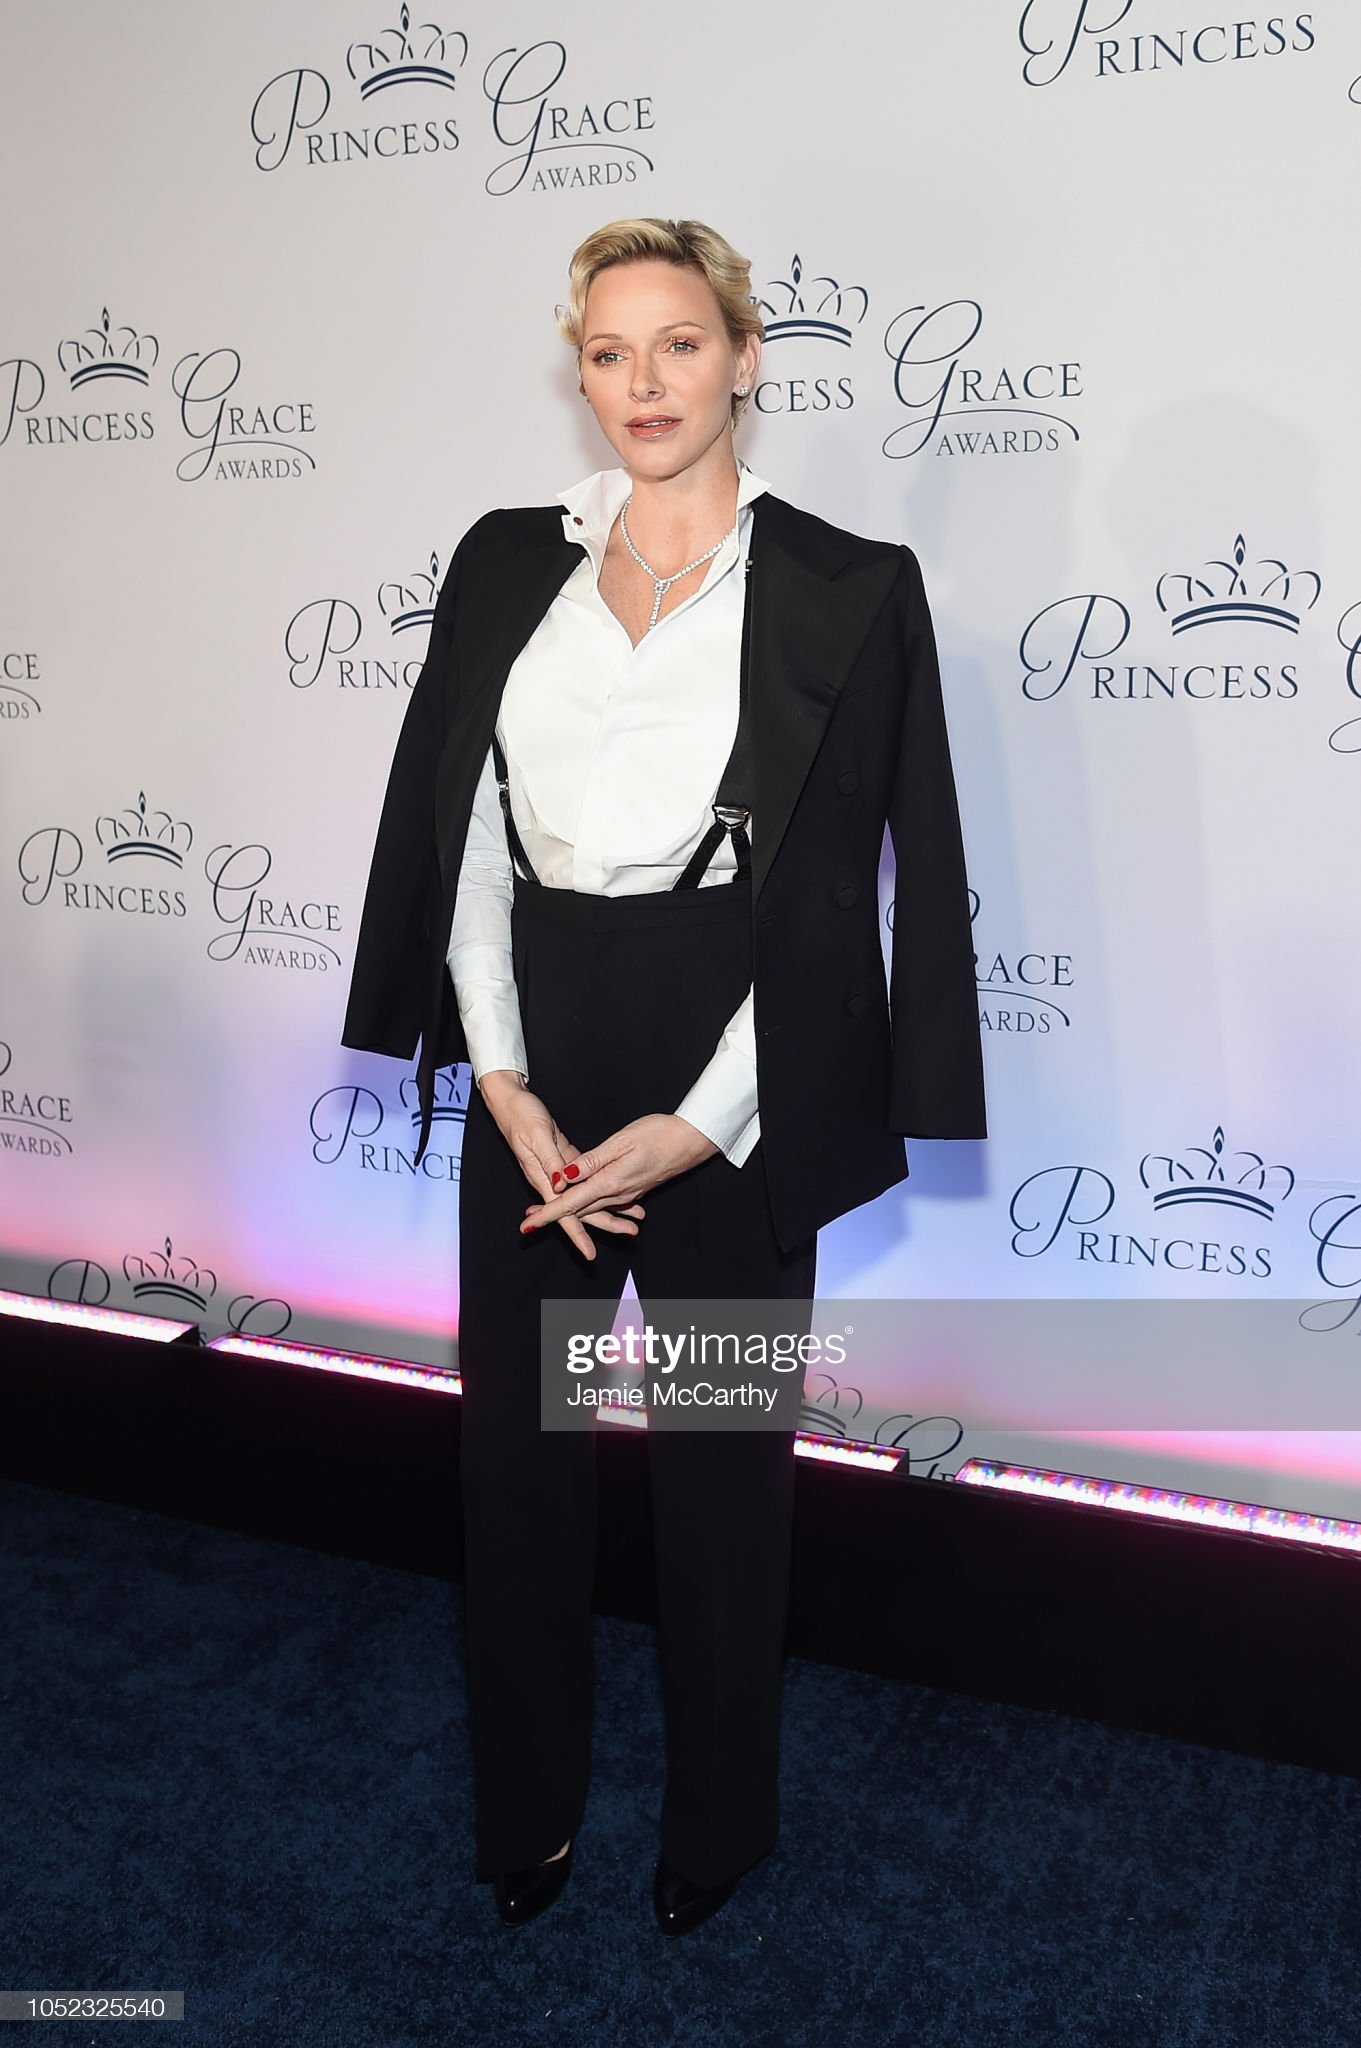 2018 Princess Grace Awards Gala - Arrivals : News Photo